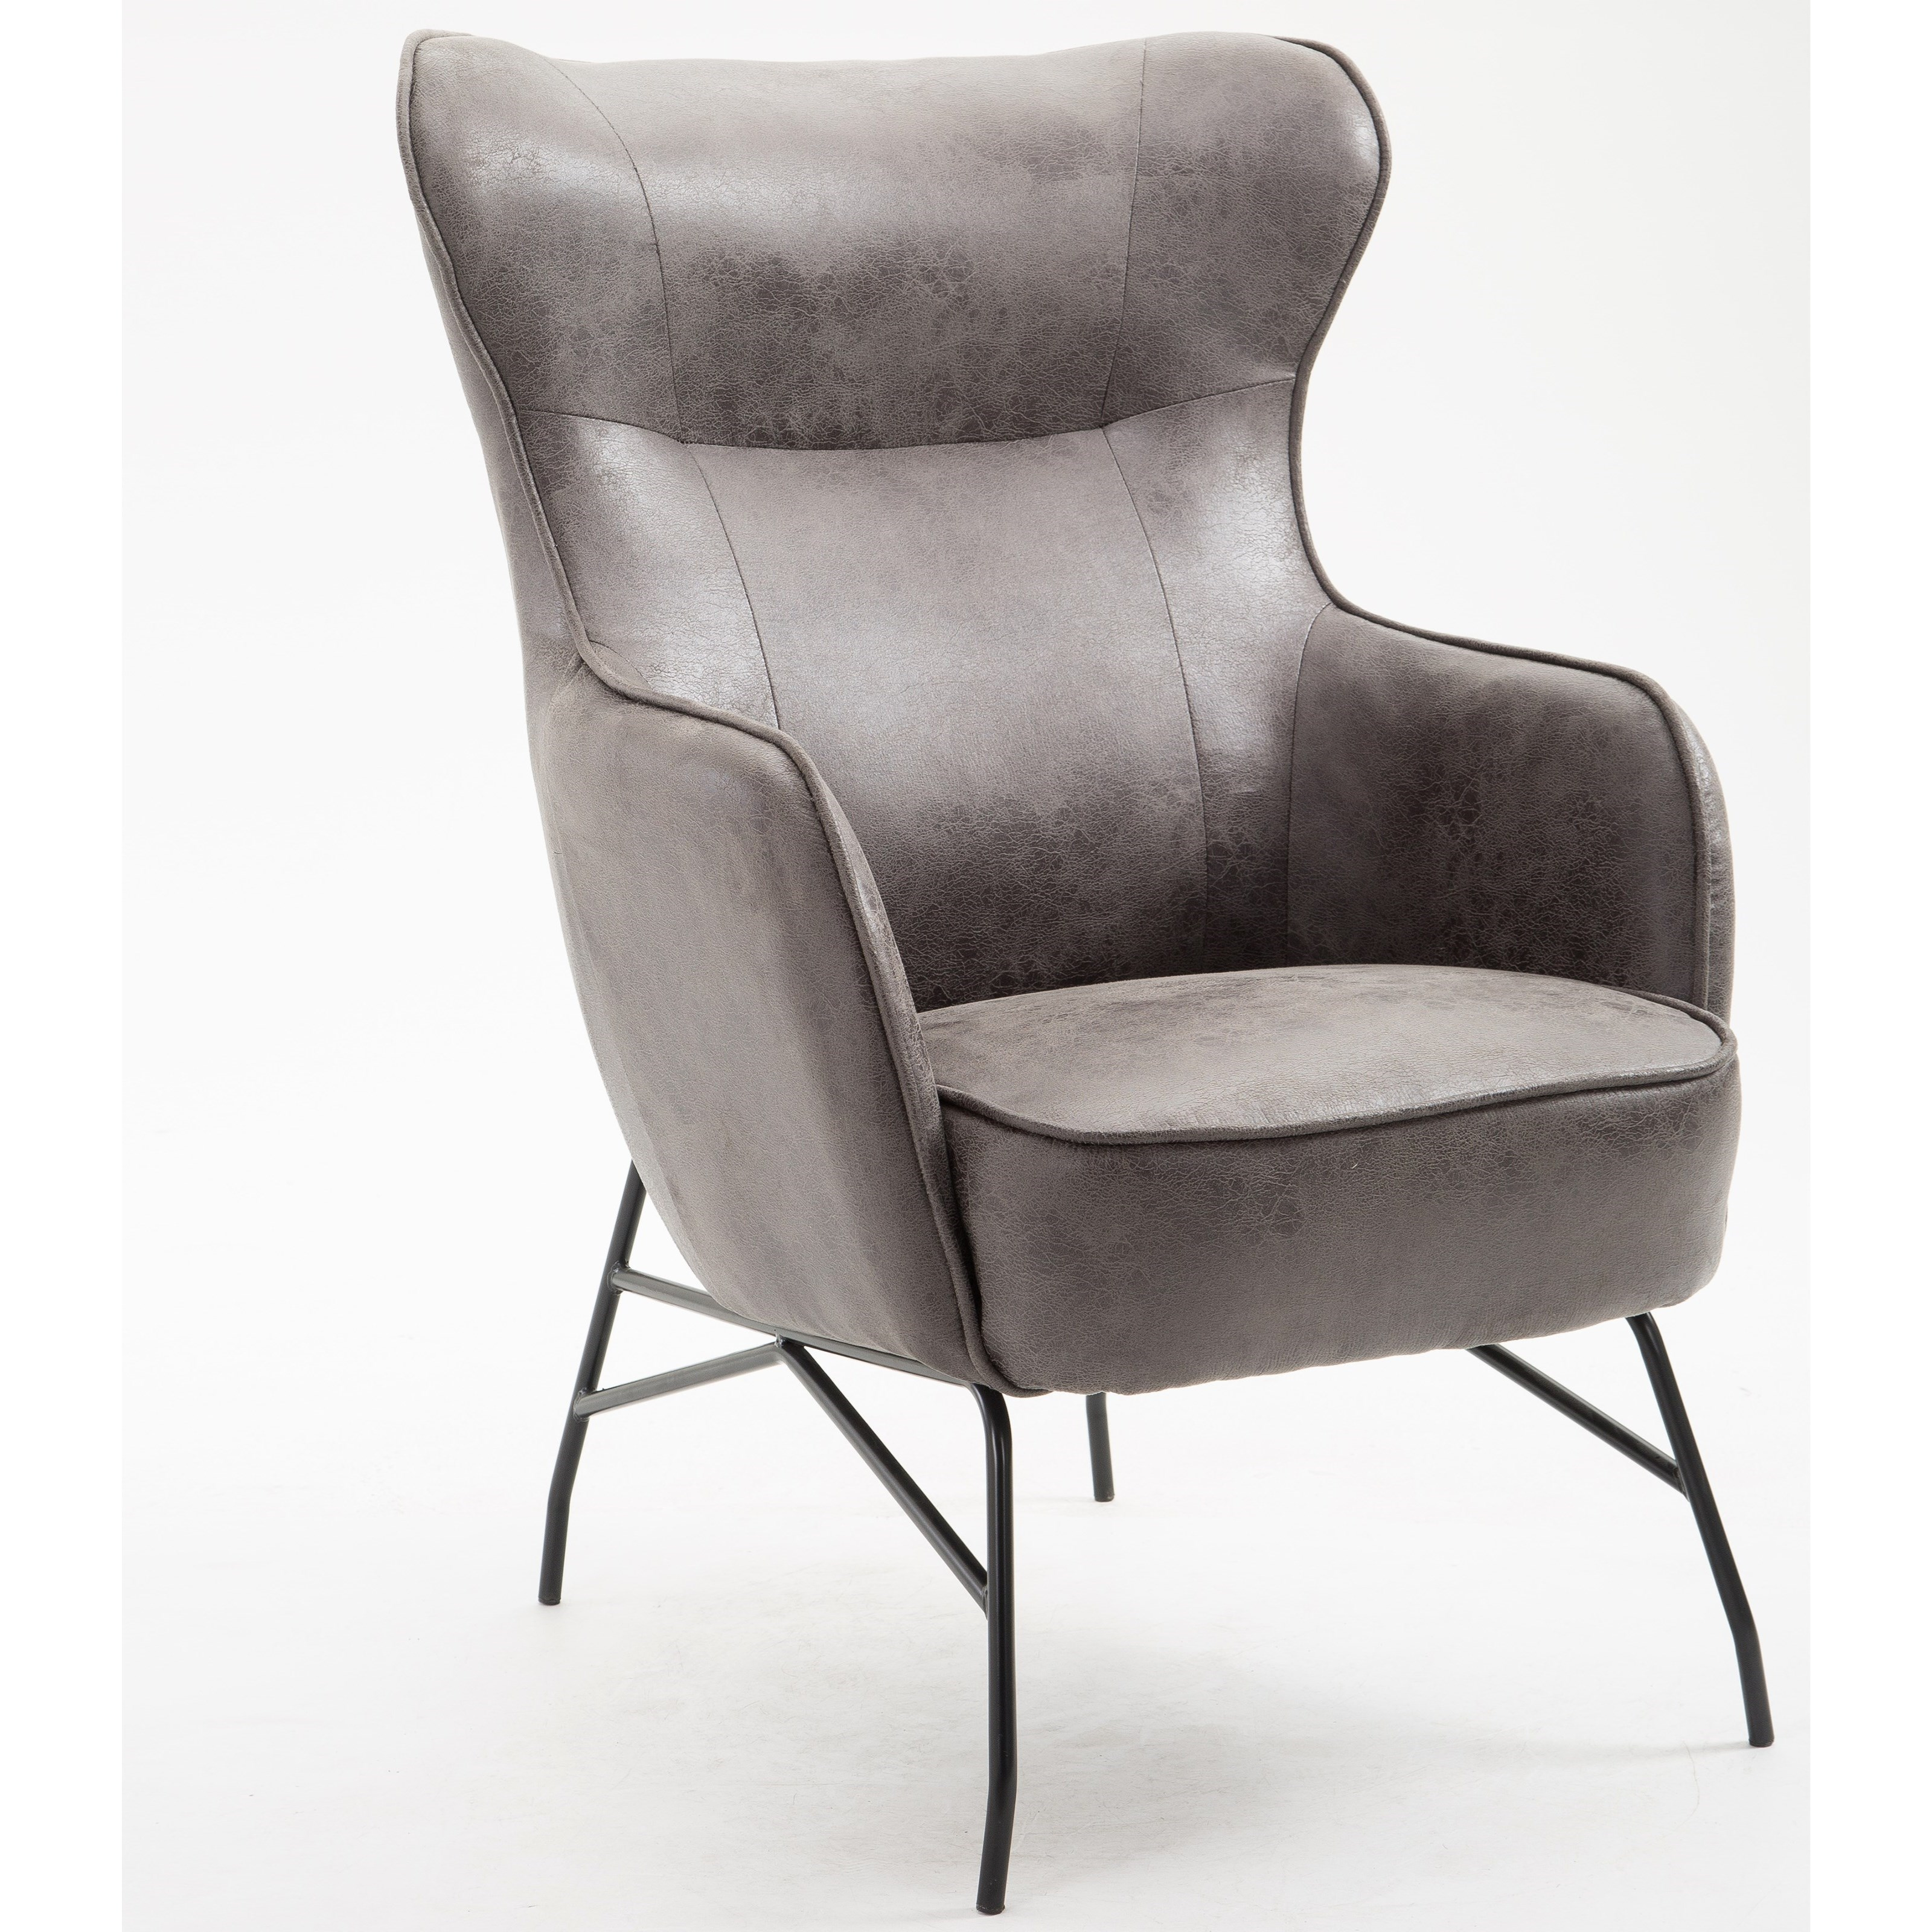 Franky Accent Chair by Emerald at Michael Alan Furniture & Design